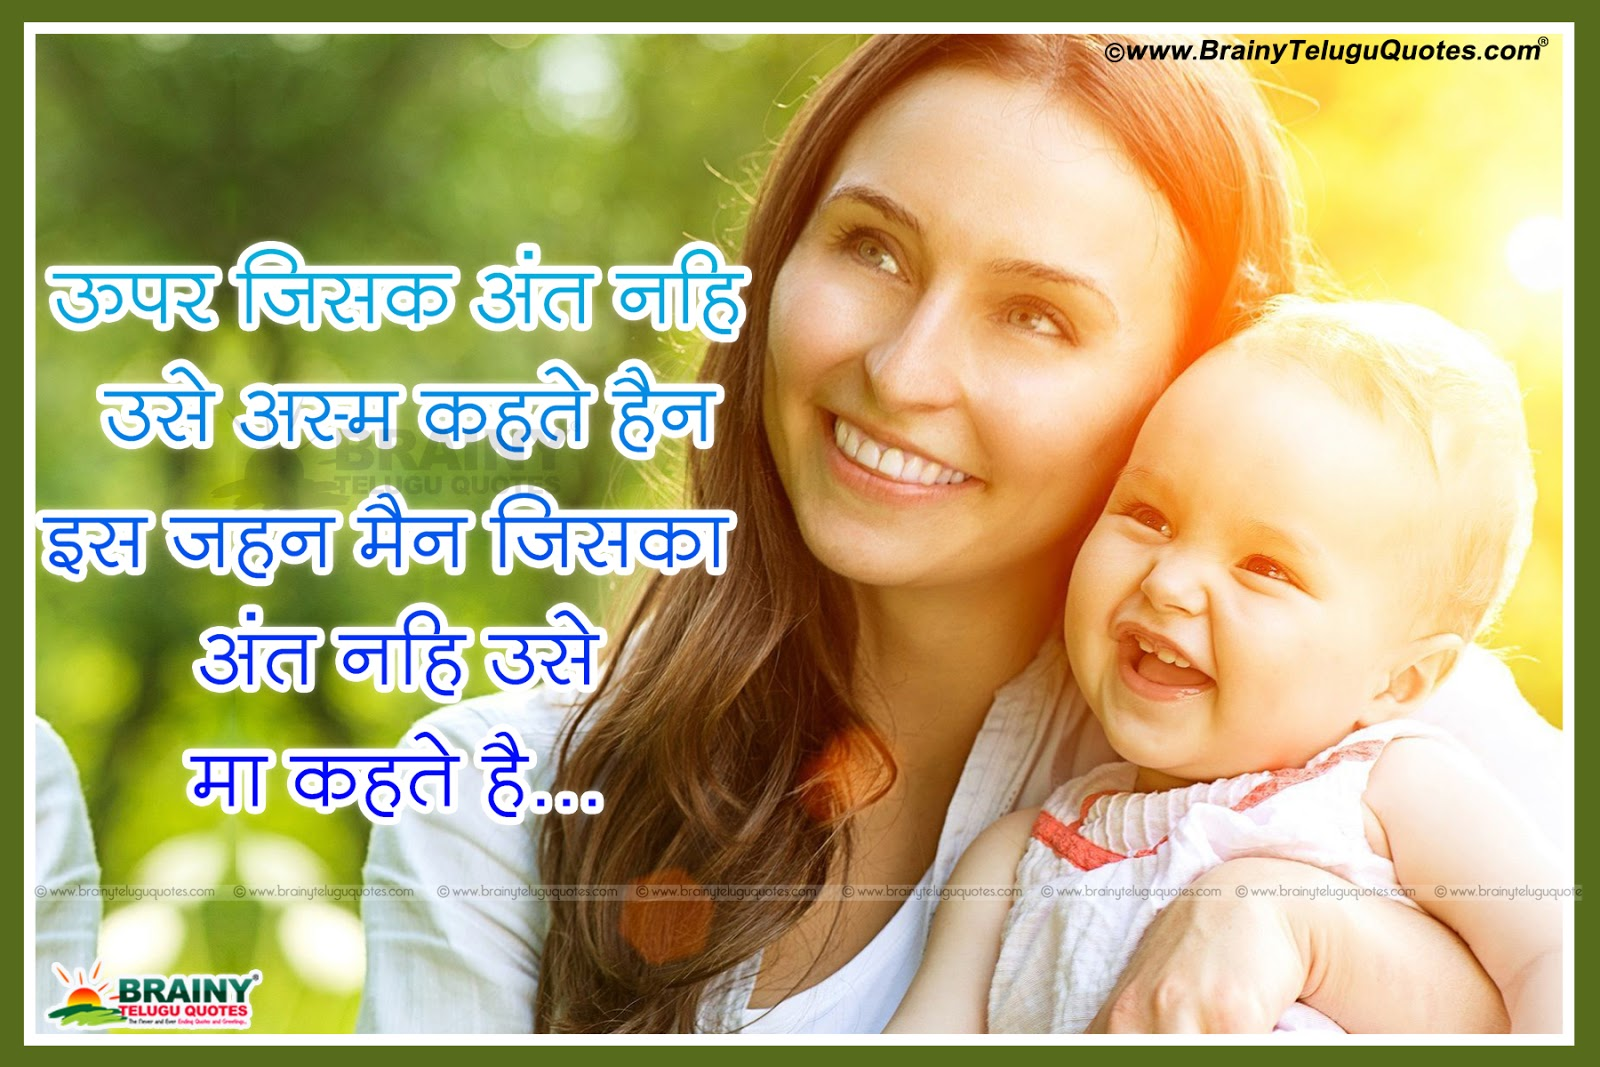 I Love You Mom Quotes In Hindi The Christmas Tree